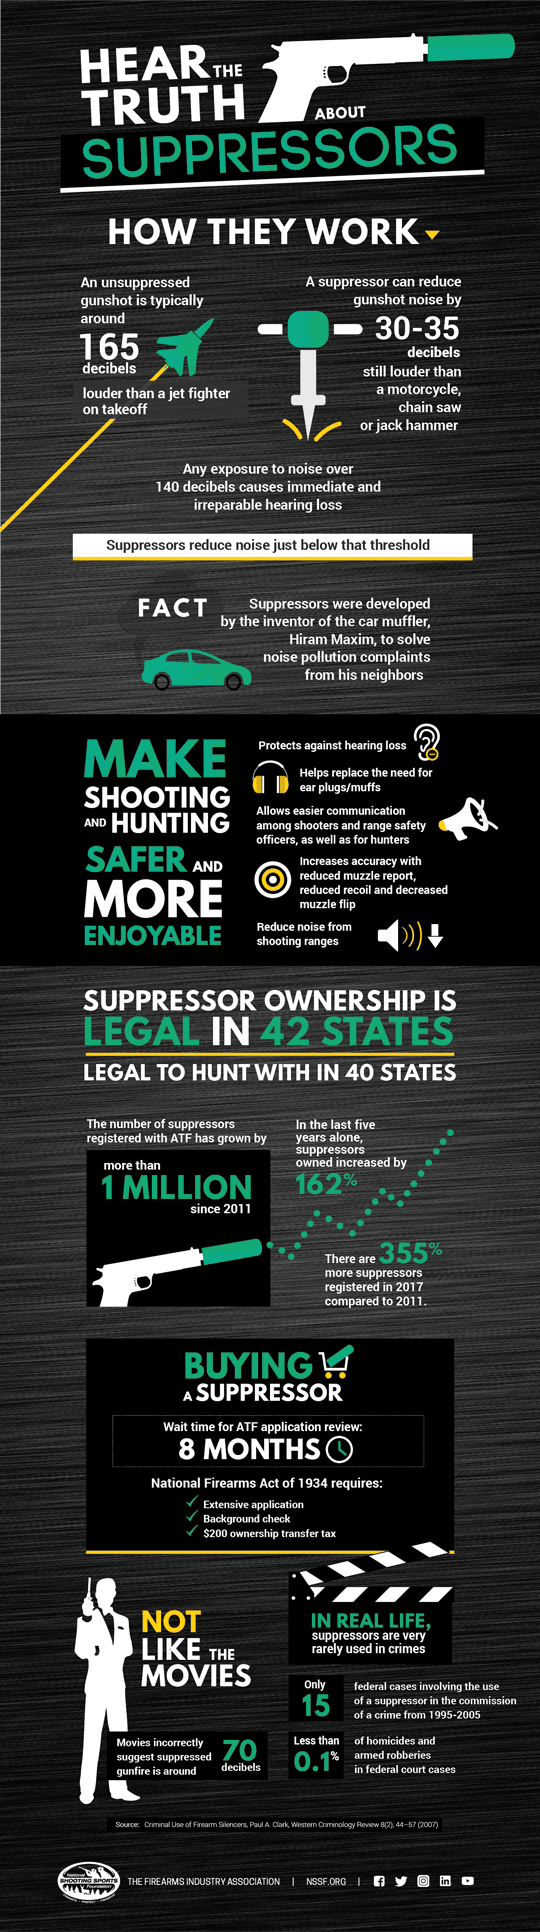 Hear the Truth About Suppressors